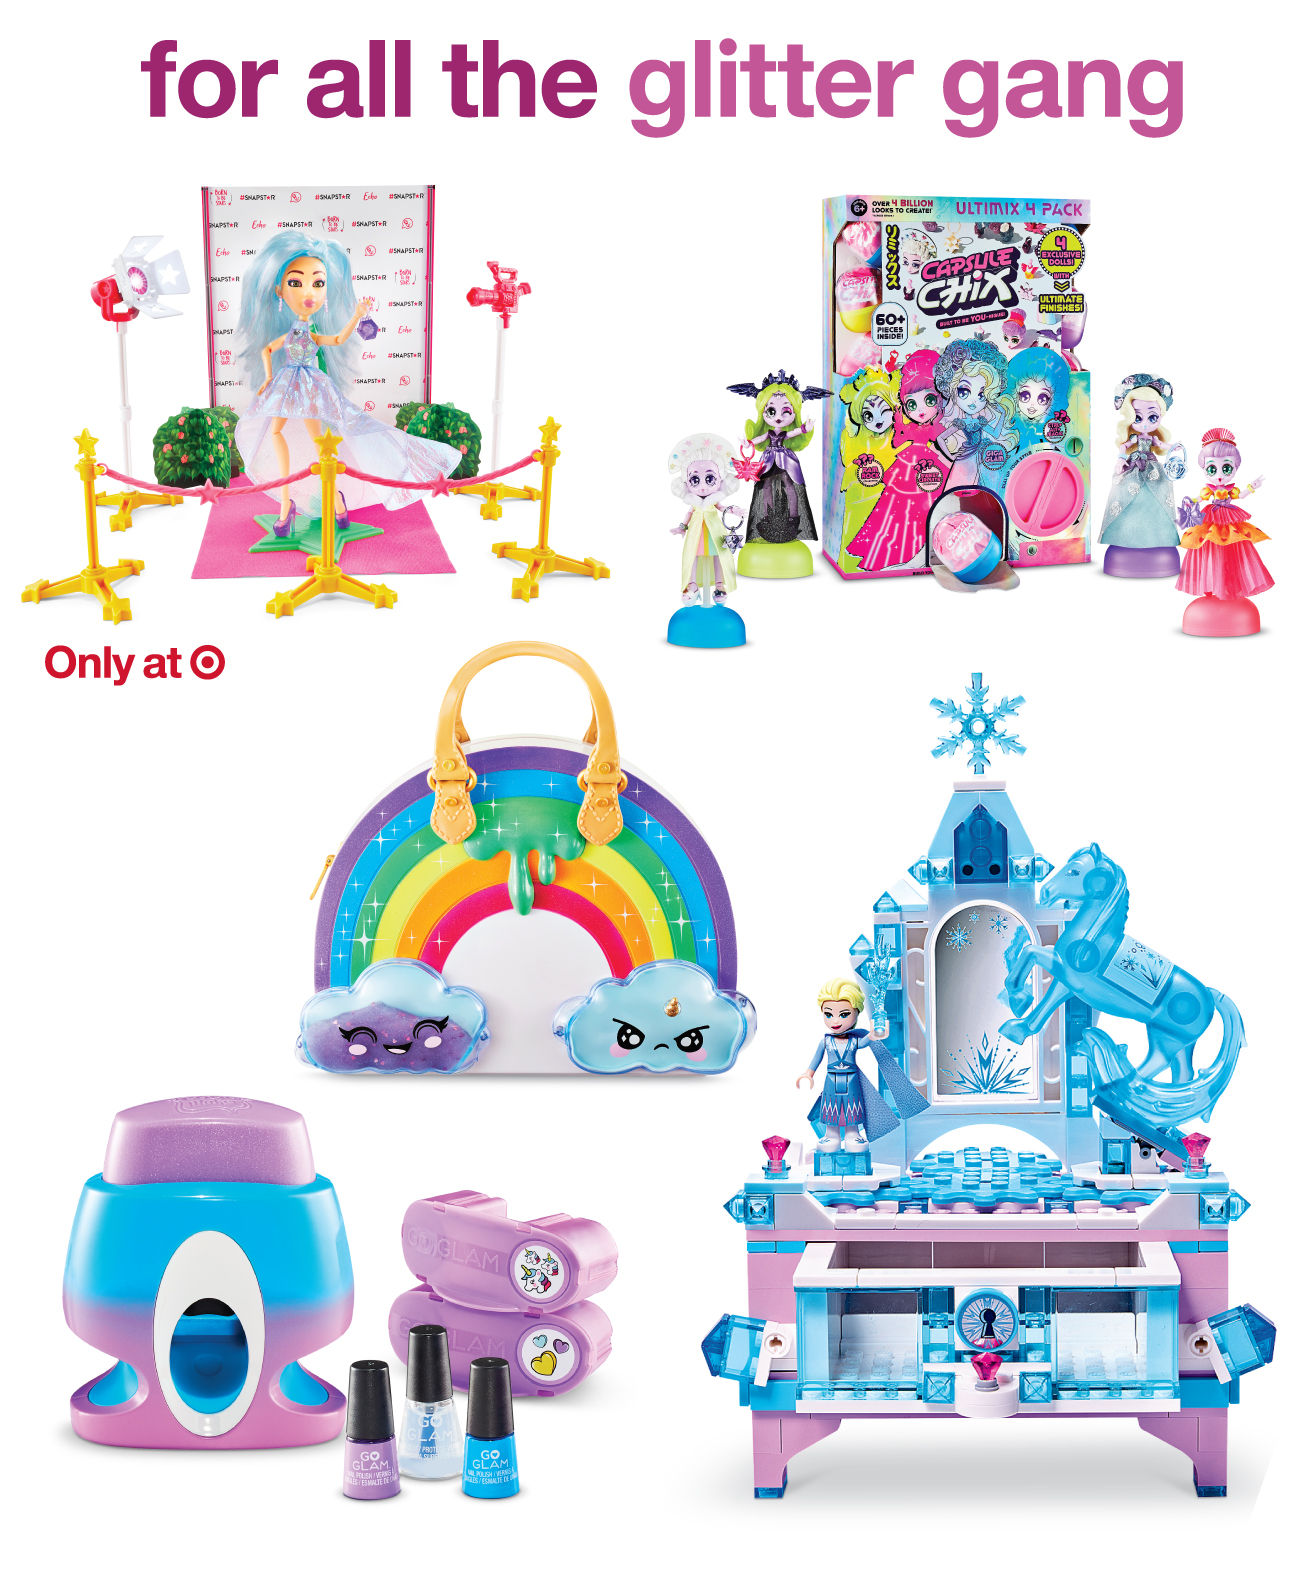 A collage of sparkly toys